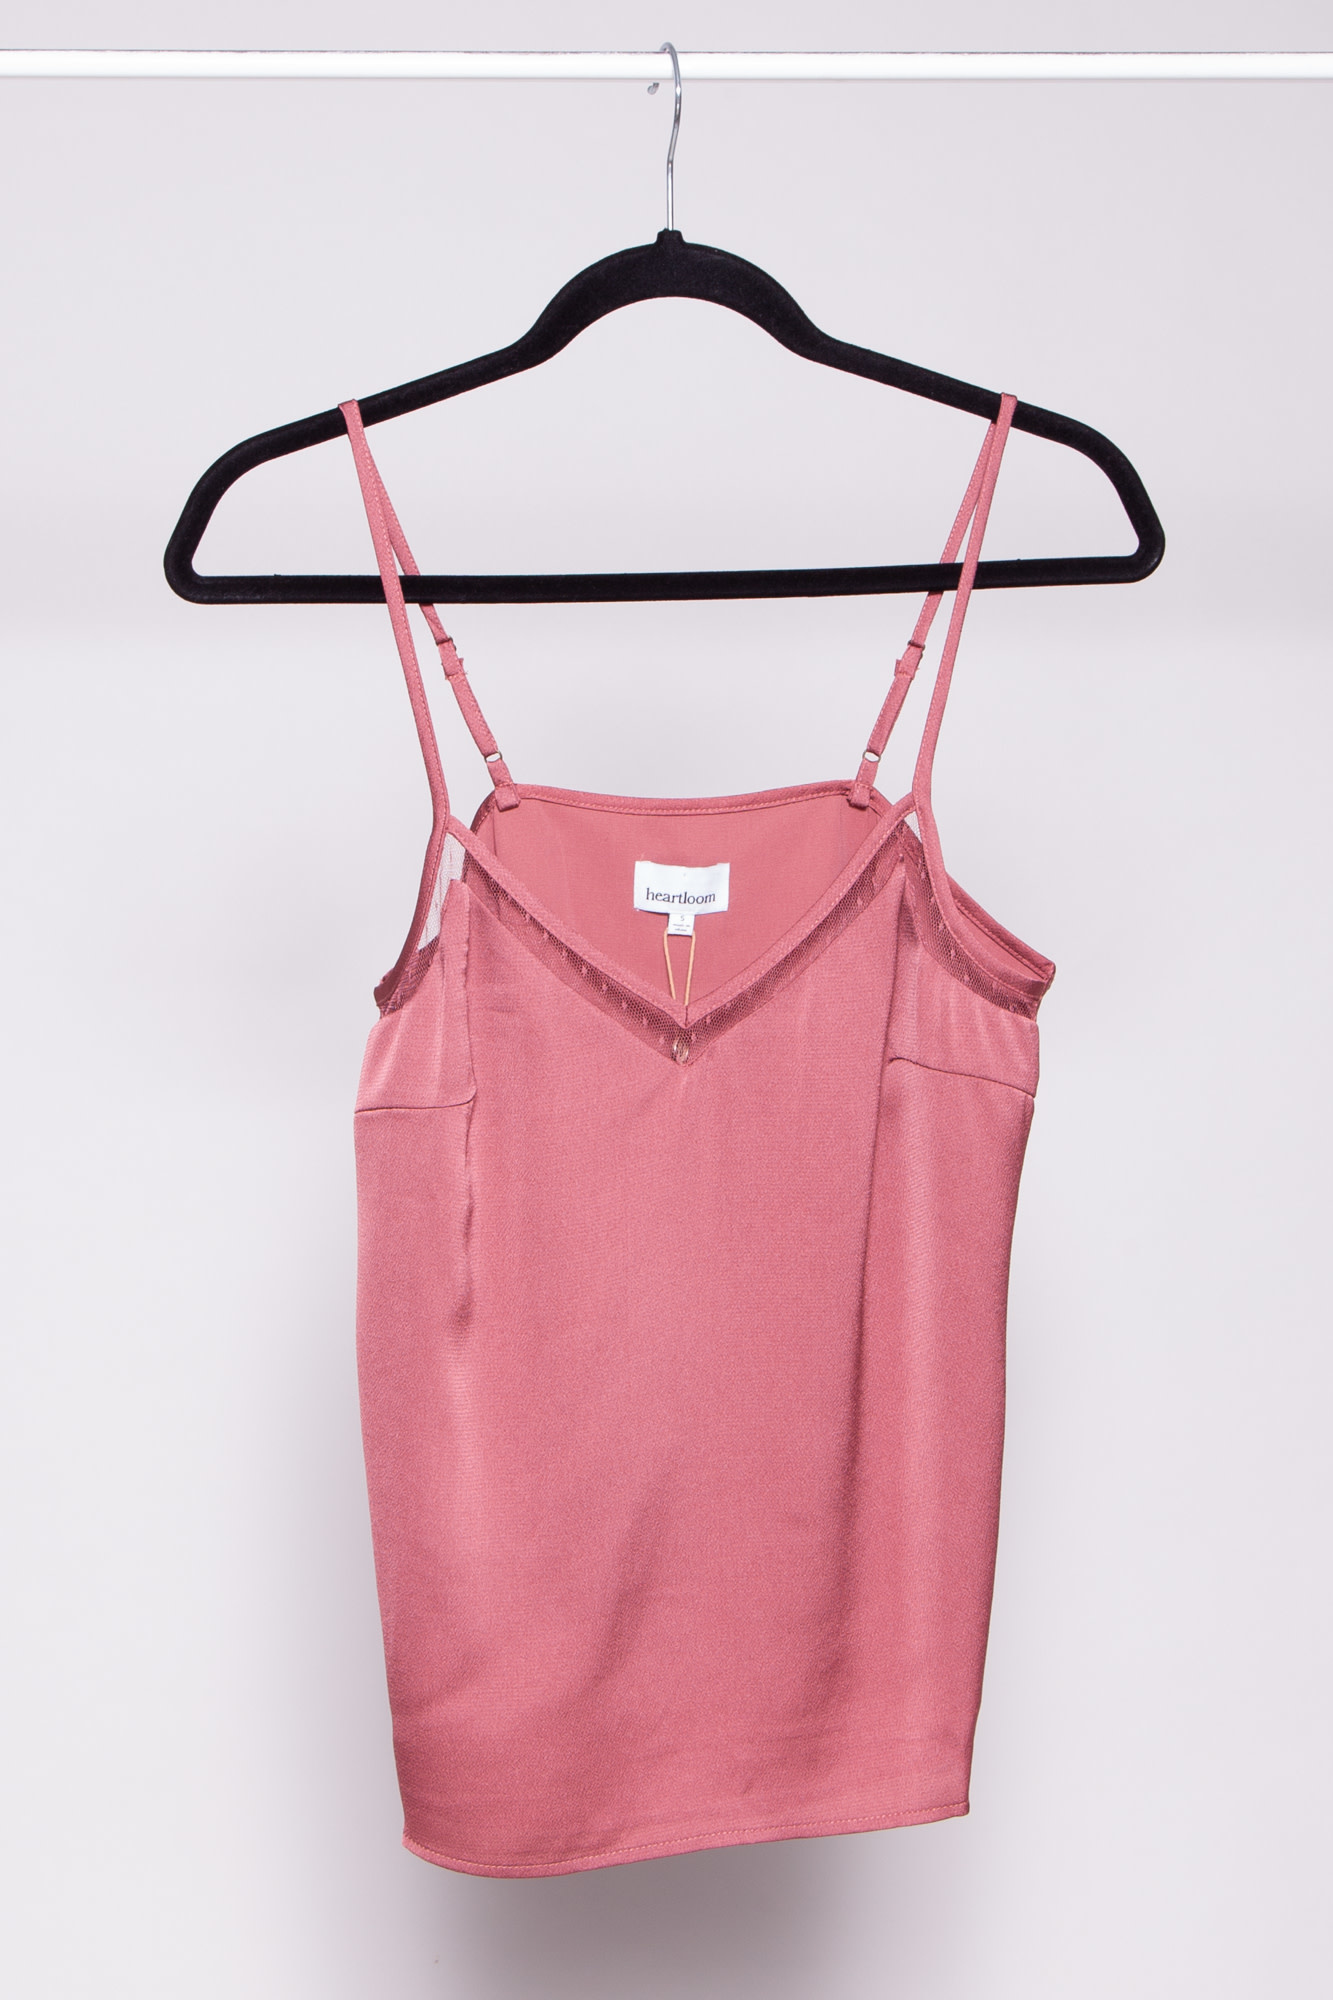 Heartloom DUSTY PINK TOP - NEW ITH TAGS